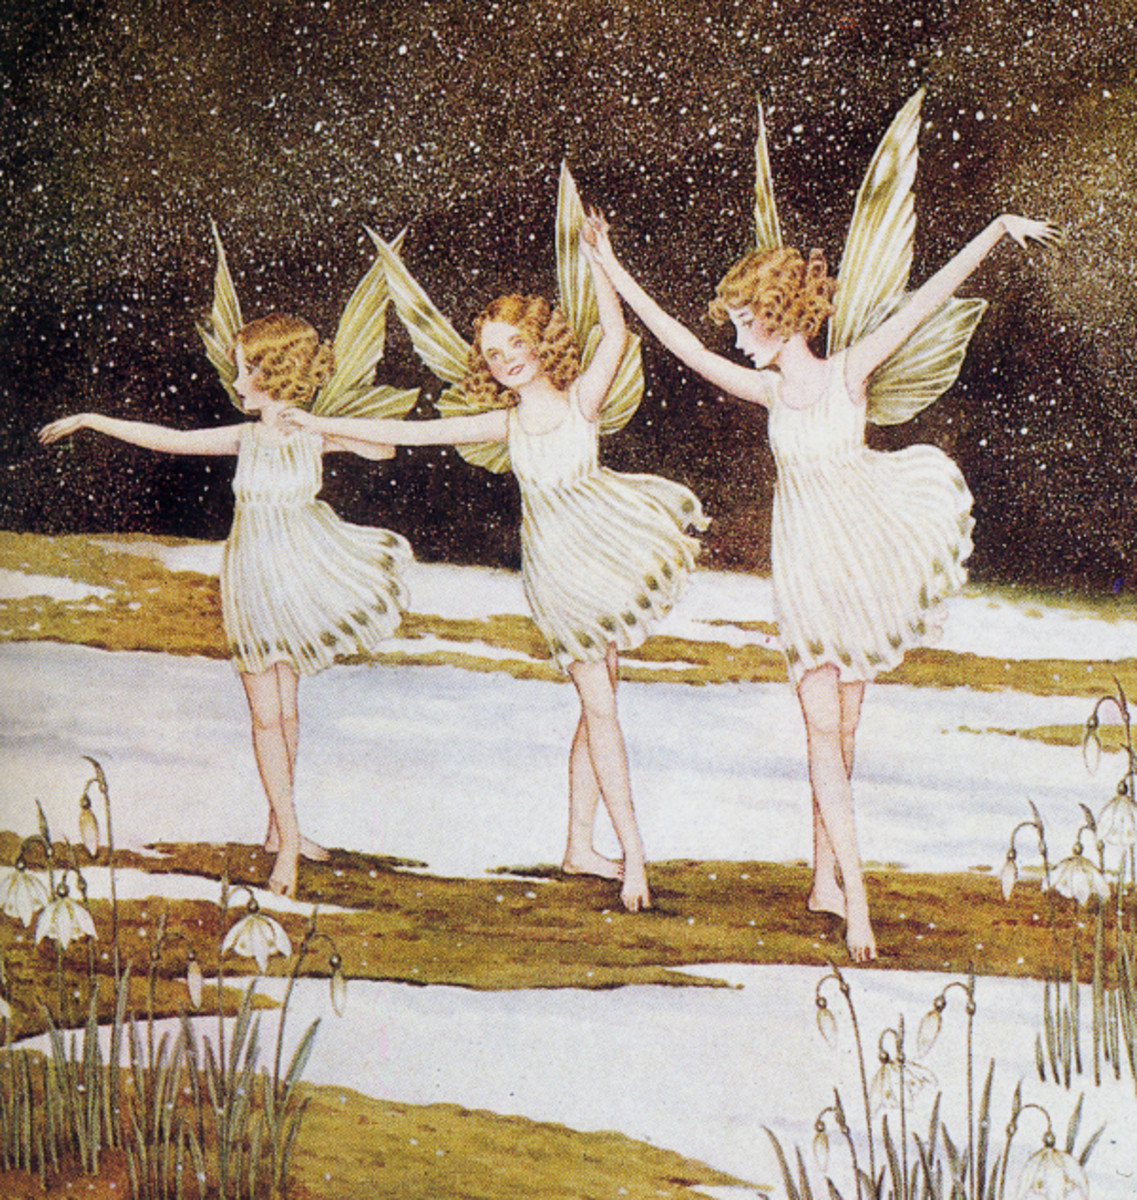 "Here we show a portion of 'In and out among the snowdrops Fairies were dancing' - it is from Ida Rentoul Outhwaite's suite published in ""Bunny and Brownie: The Adventures of George and Wiggle"" (1930)."